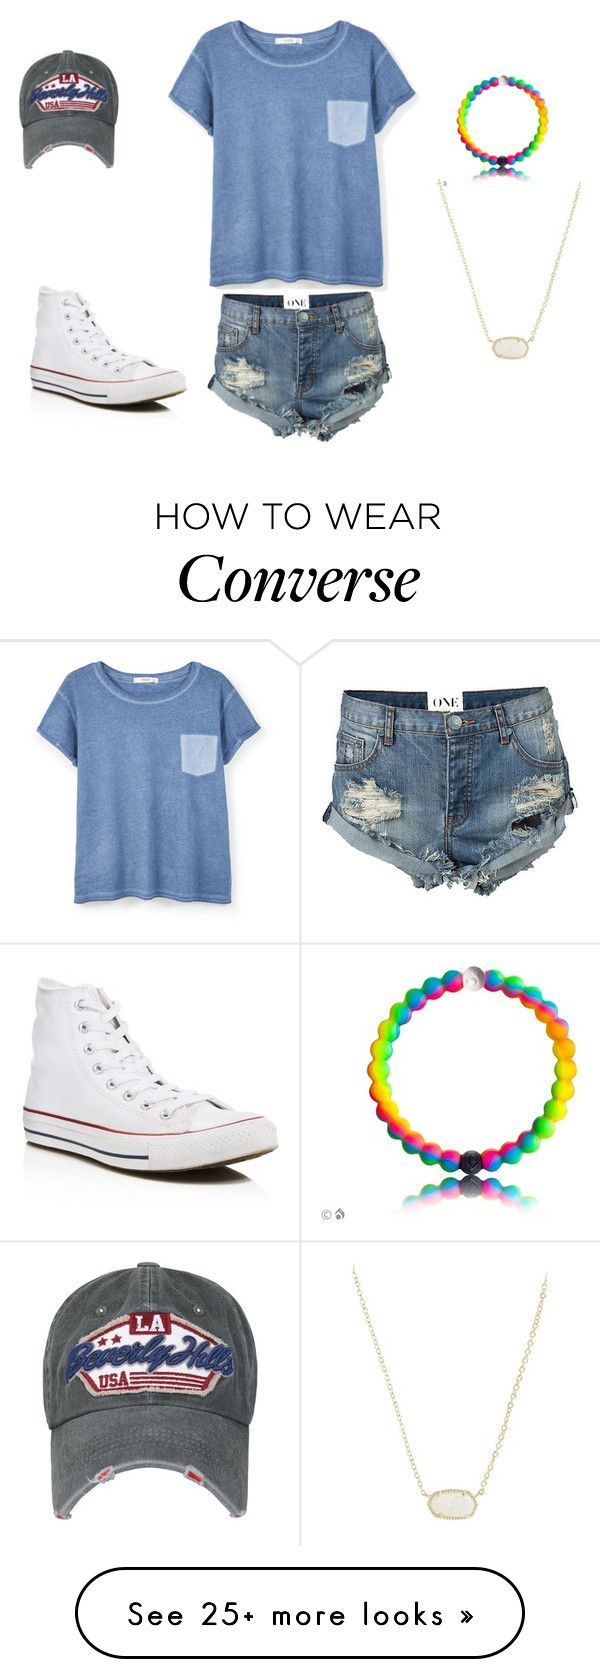 """How to wear converse"" by caroline-rome on Polyvore featuring MANGO, One Teaspoon, Converse and Kendra Scott"